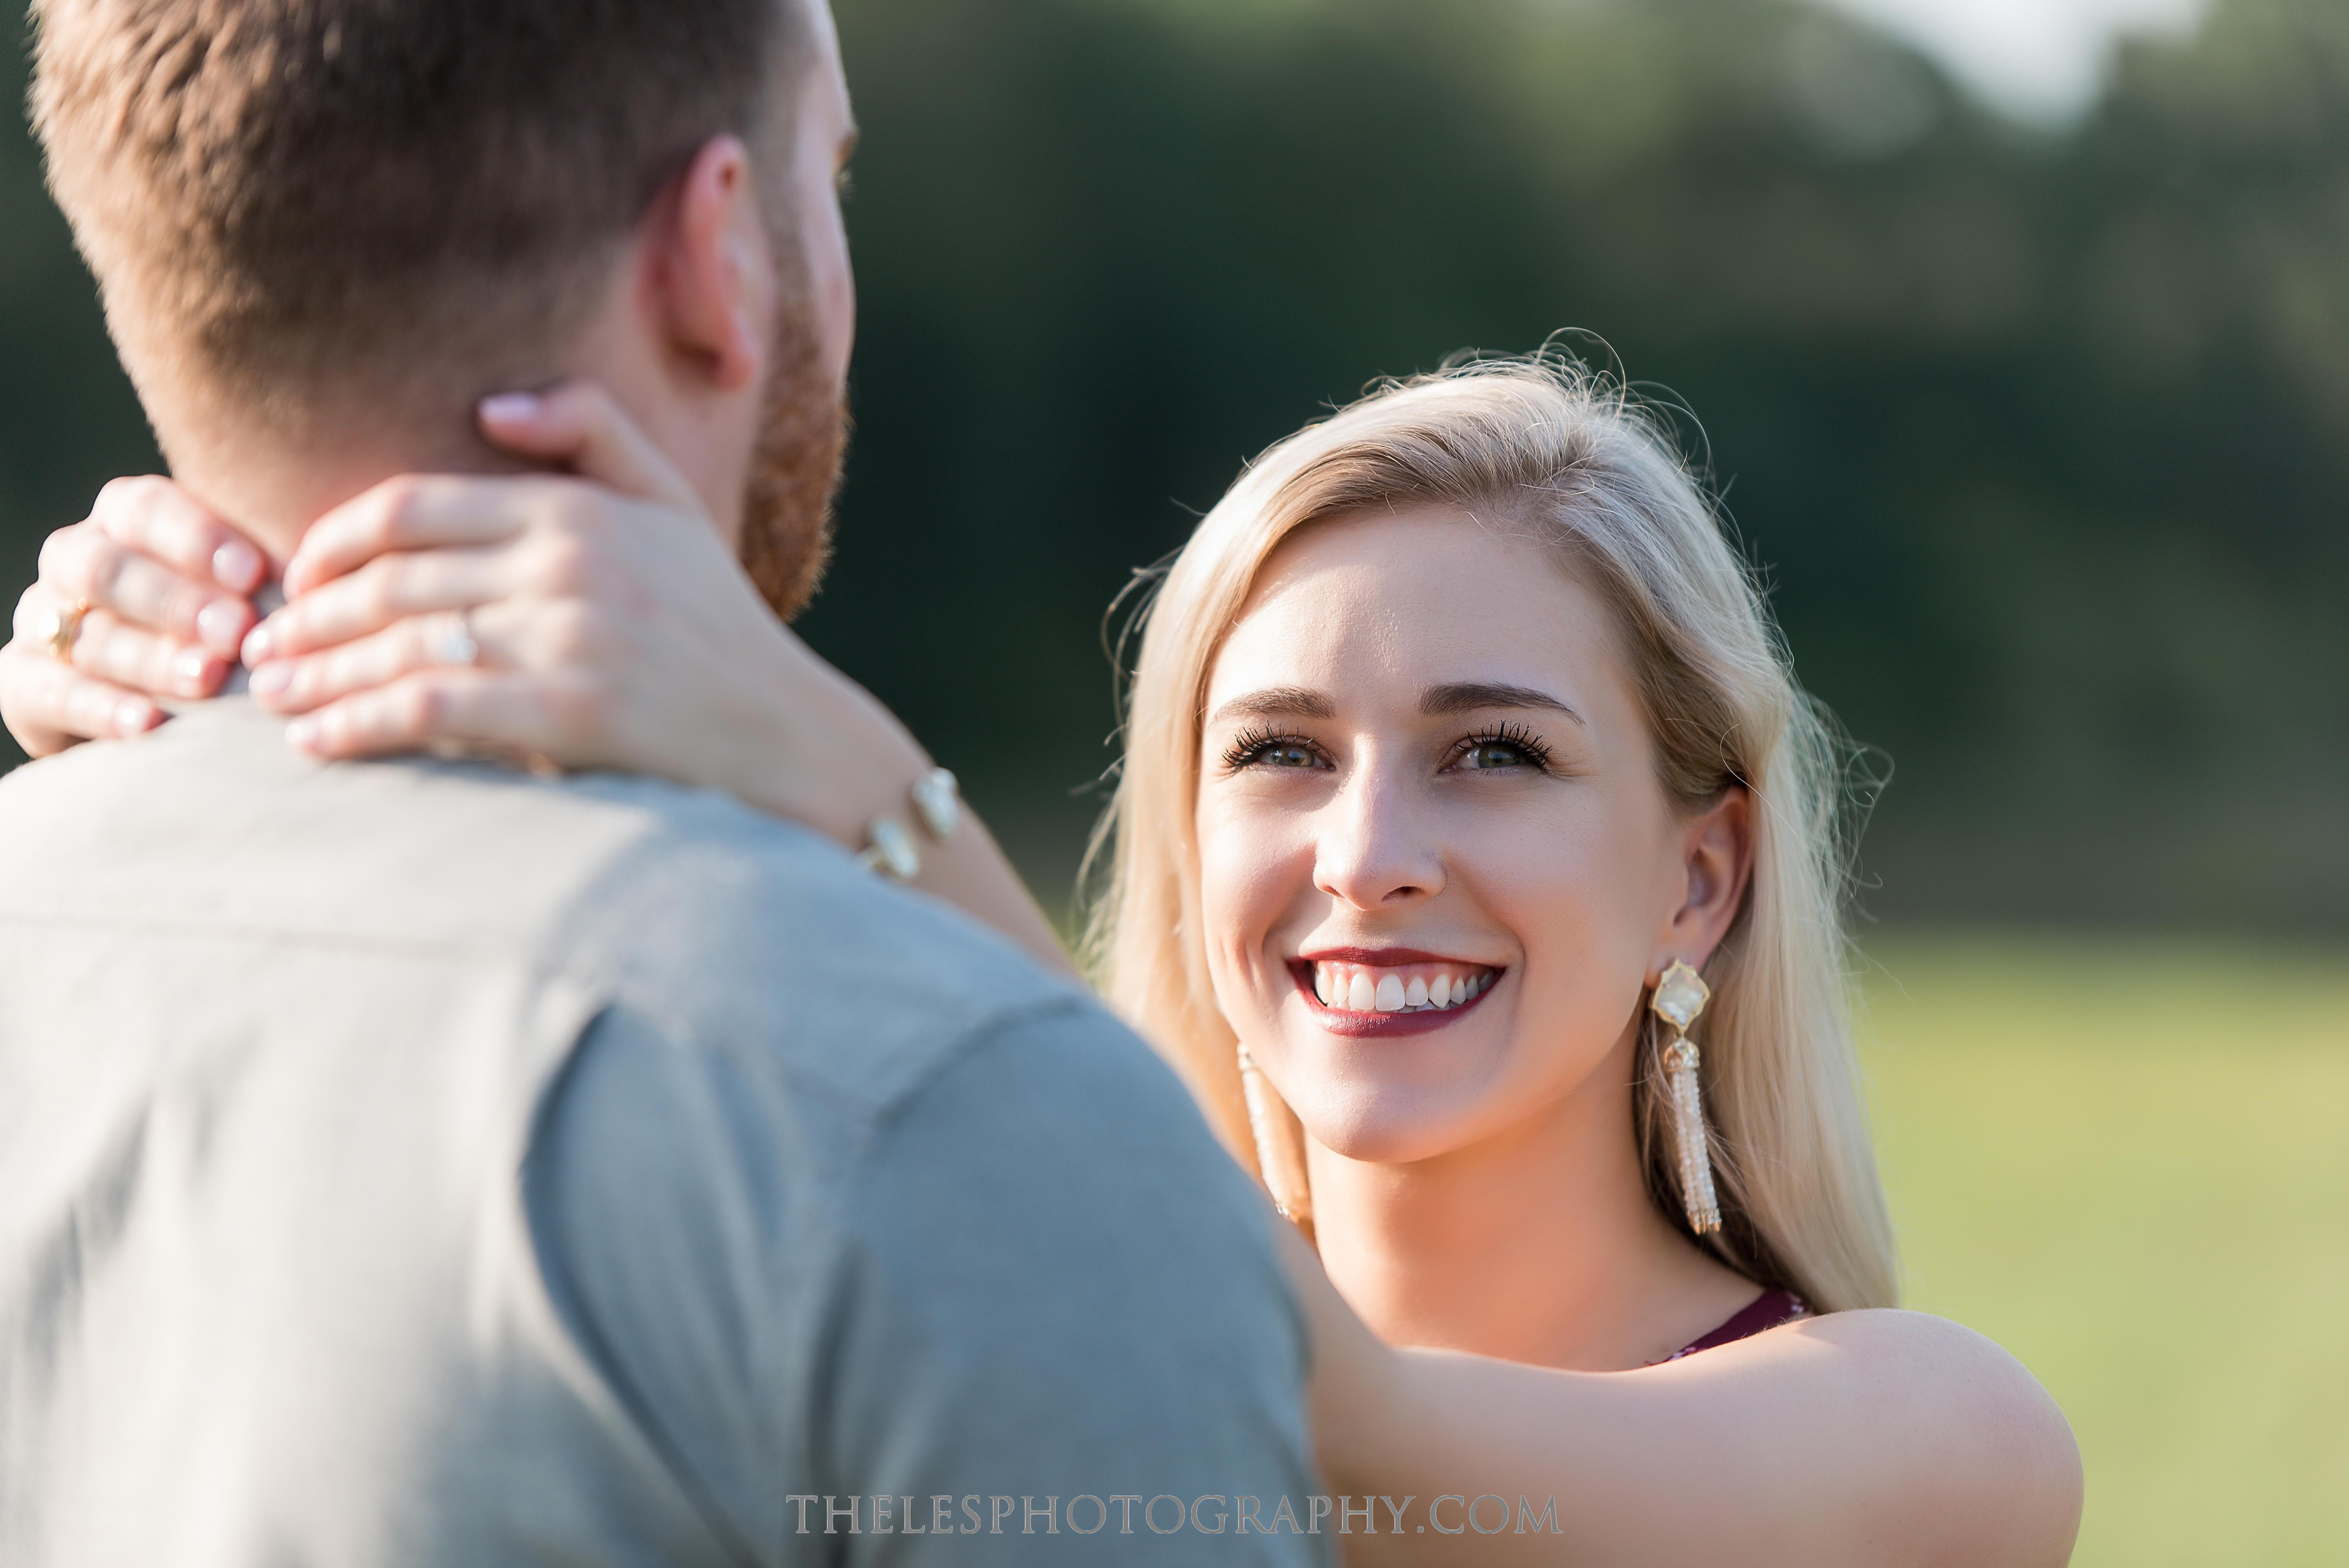 The Les Photography - Dallas Wedding Photographer - Trinity Groves Engagement - Haley and Noah 05